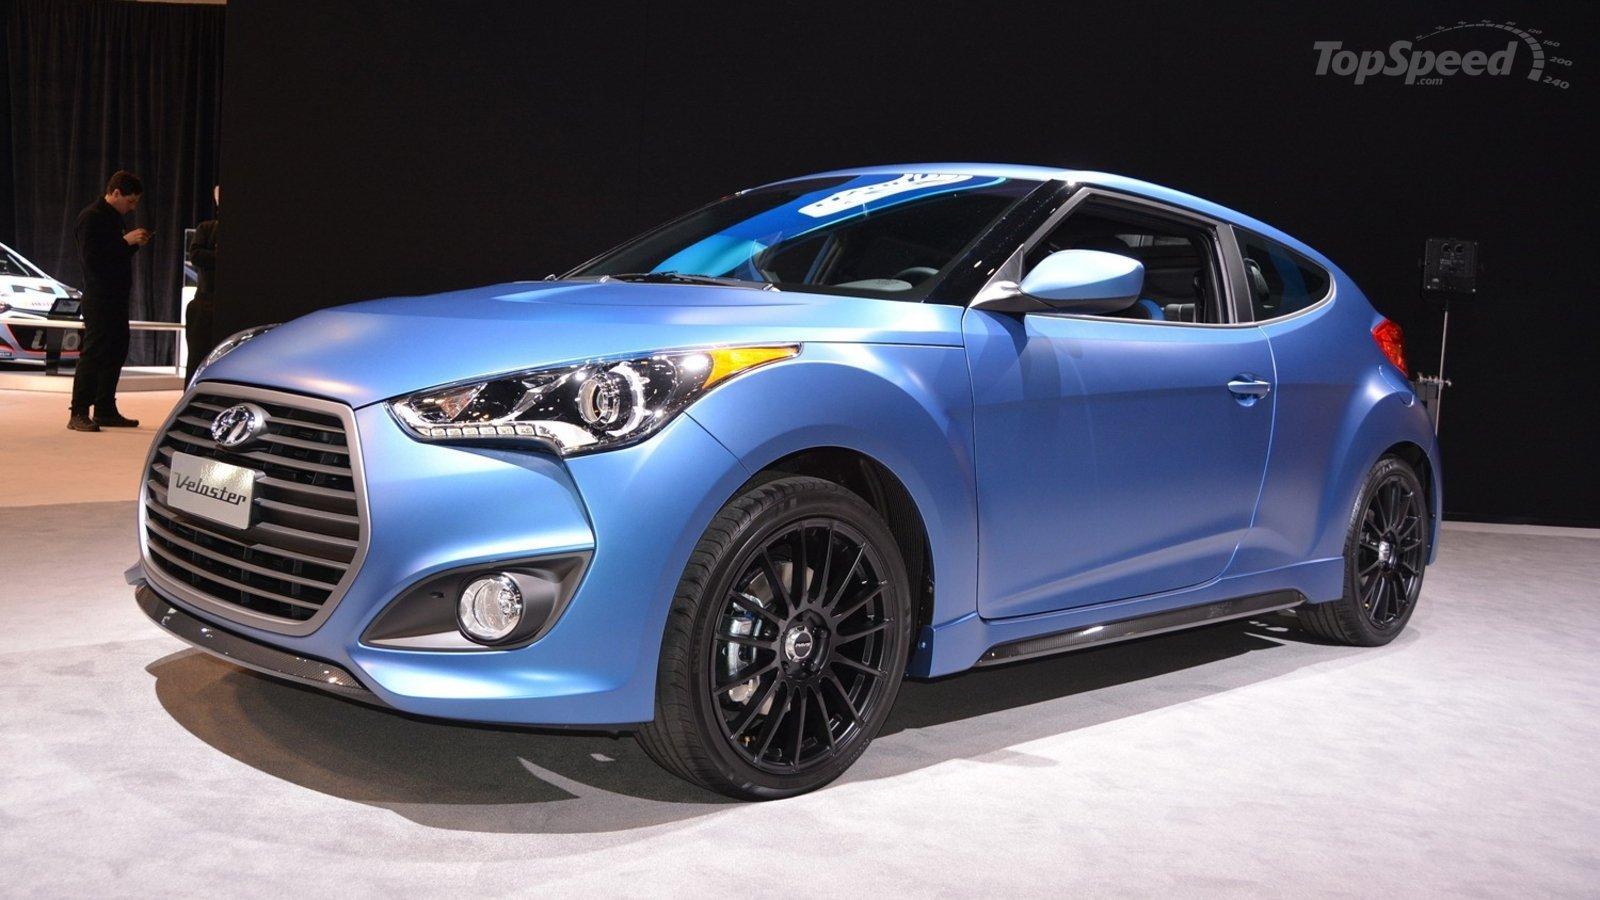 Used Hyundai Veloster >> 2016 Hyundai Veloster Rally Edition Review - Top Speed